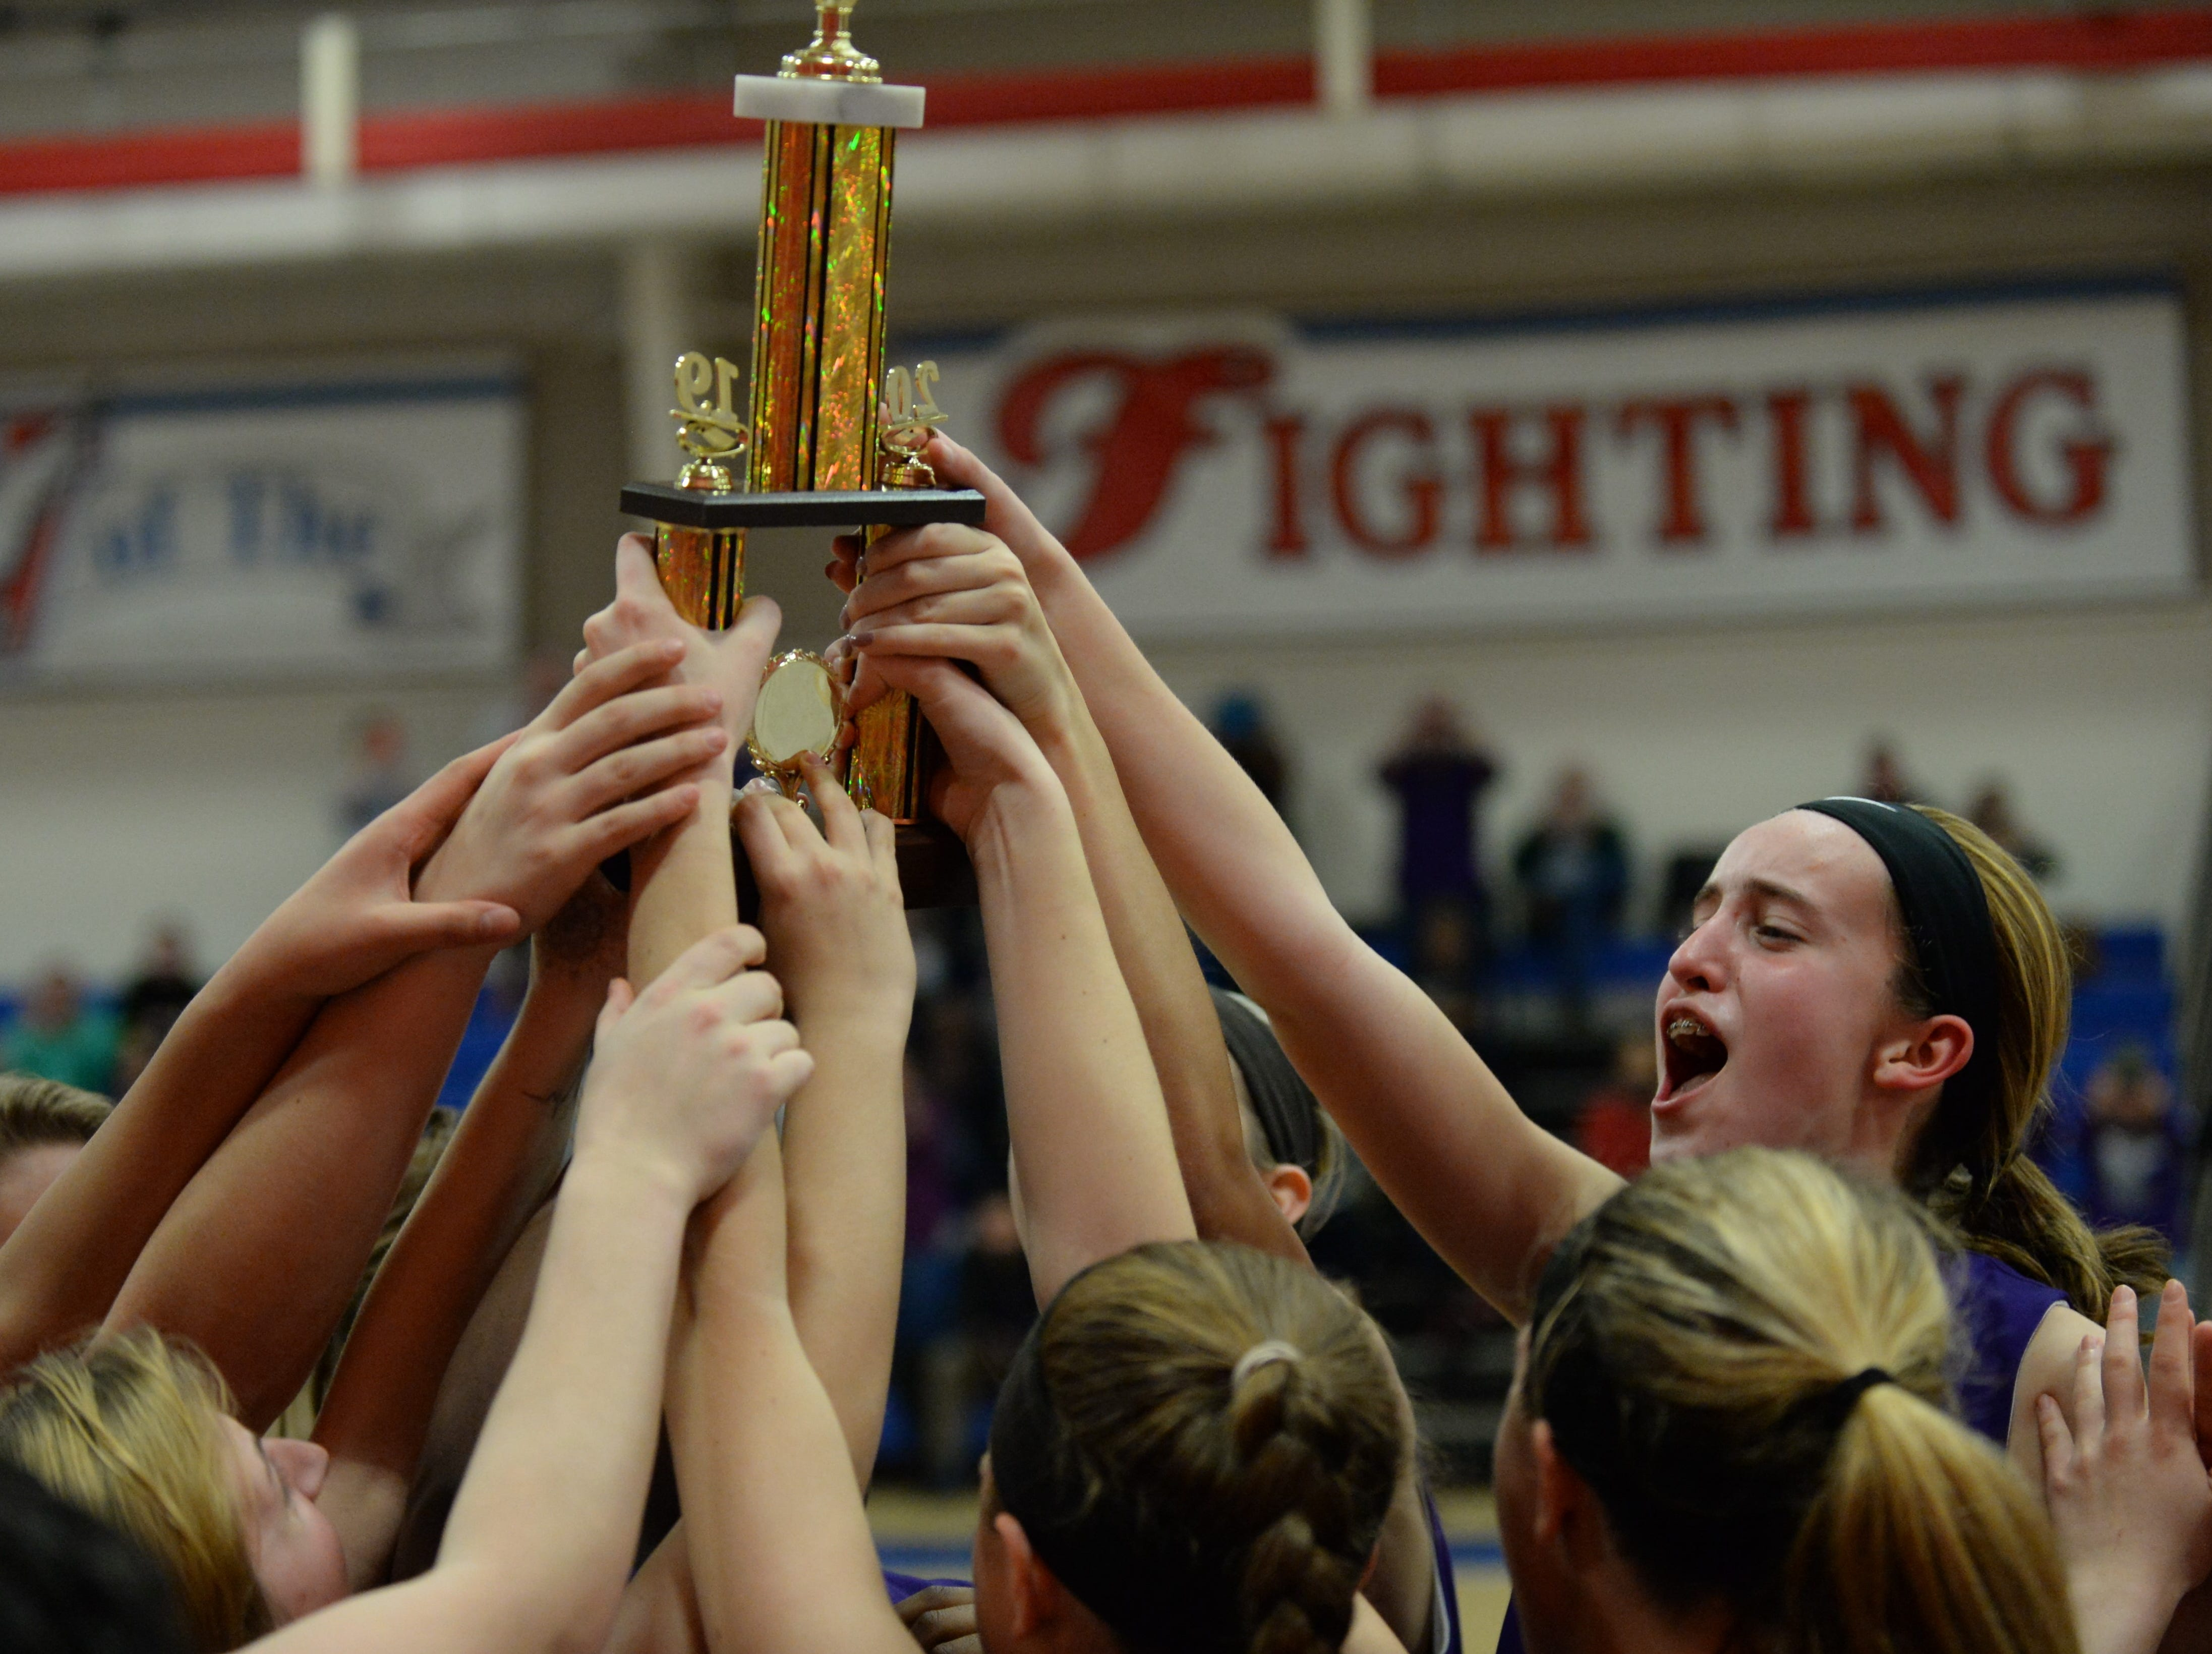 Delmarva Christian players hoist the championship trophy after defeating Worcester Prep in the ESIAC Championship game on Thursday, Feb. 21, 2019.